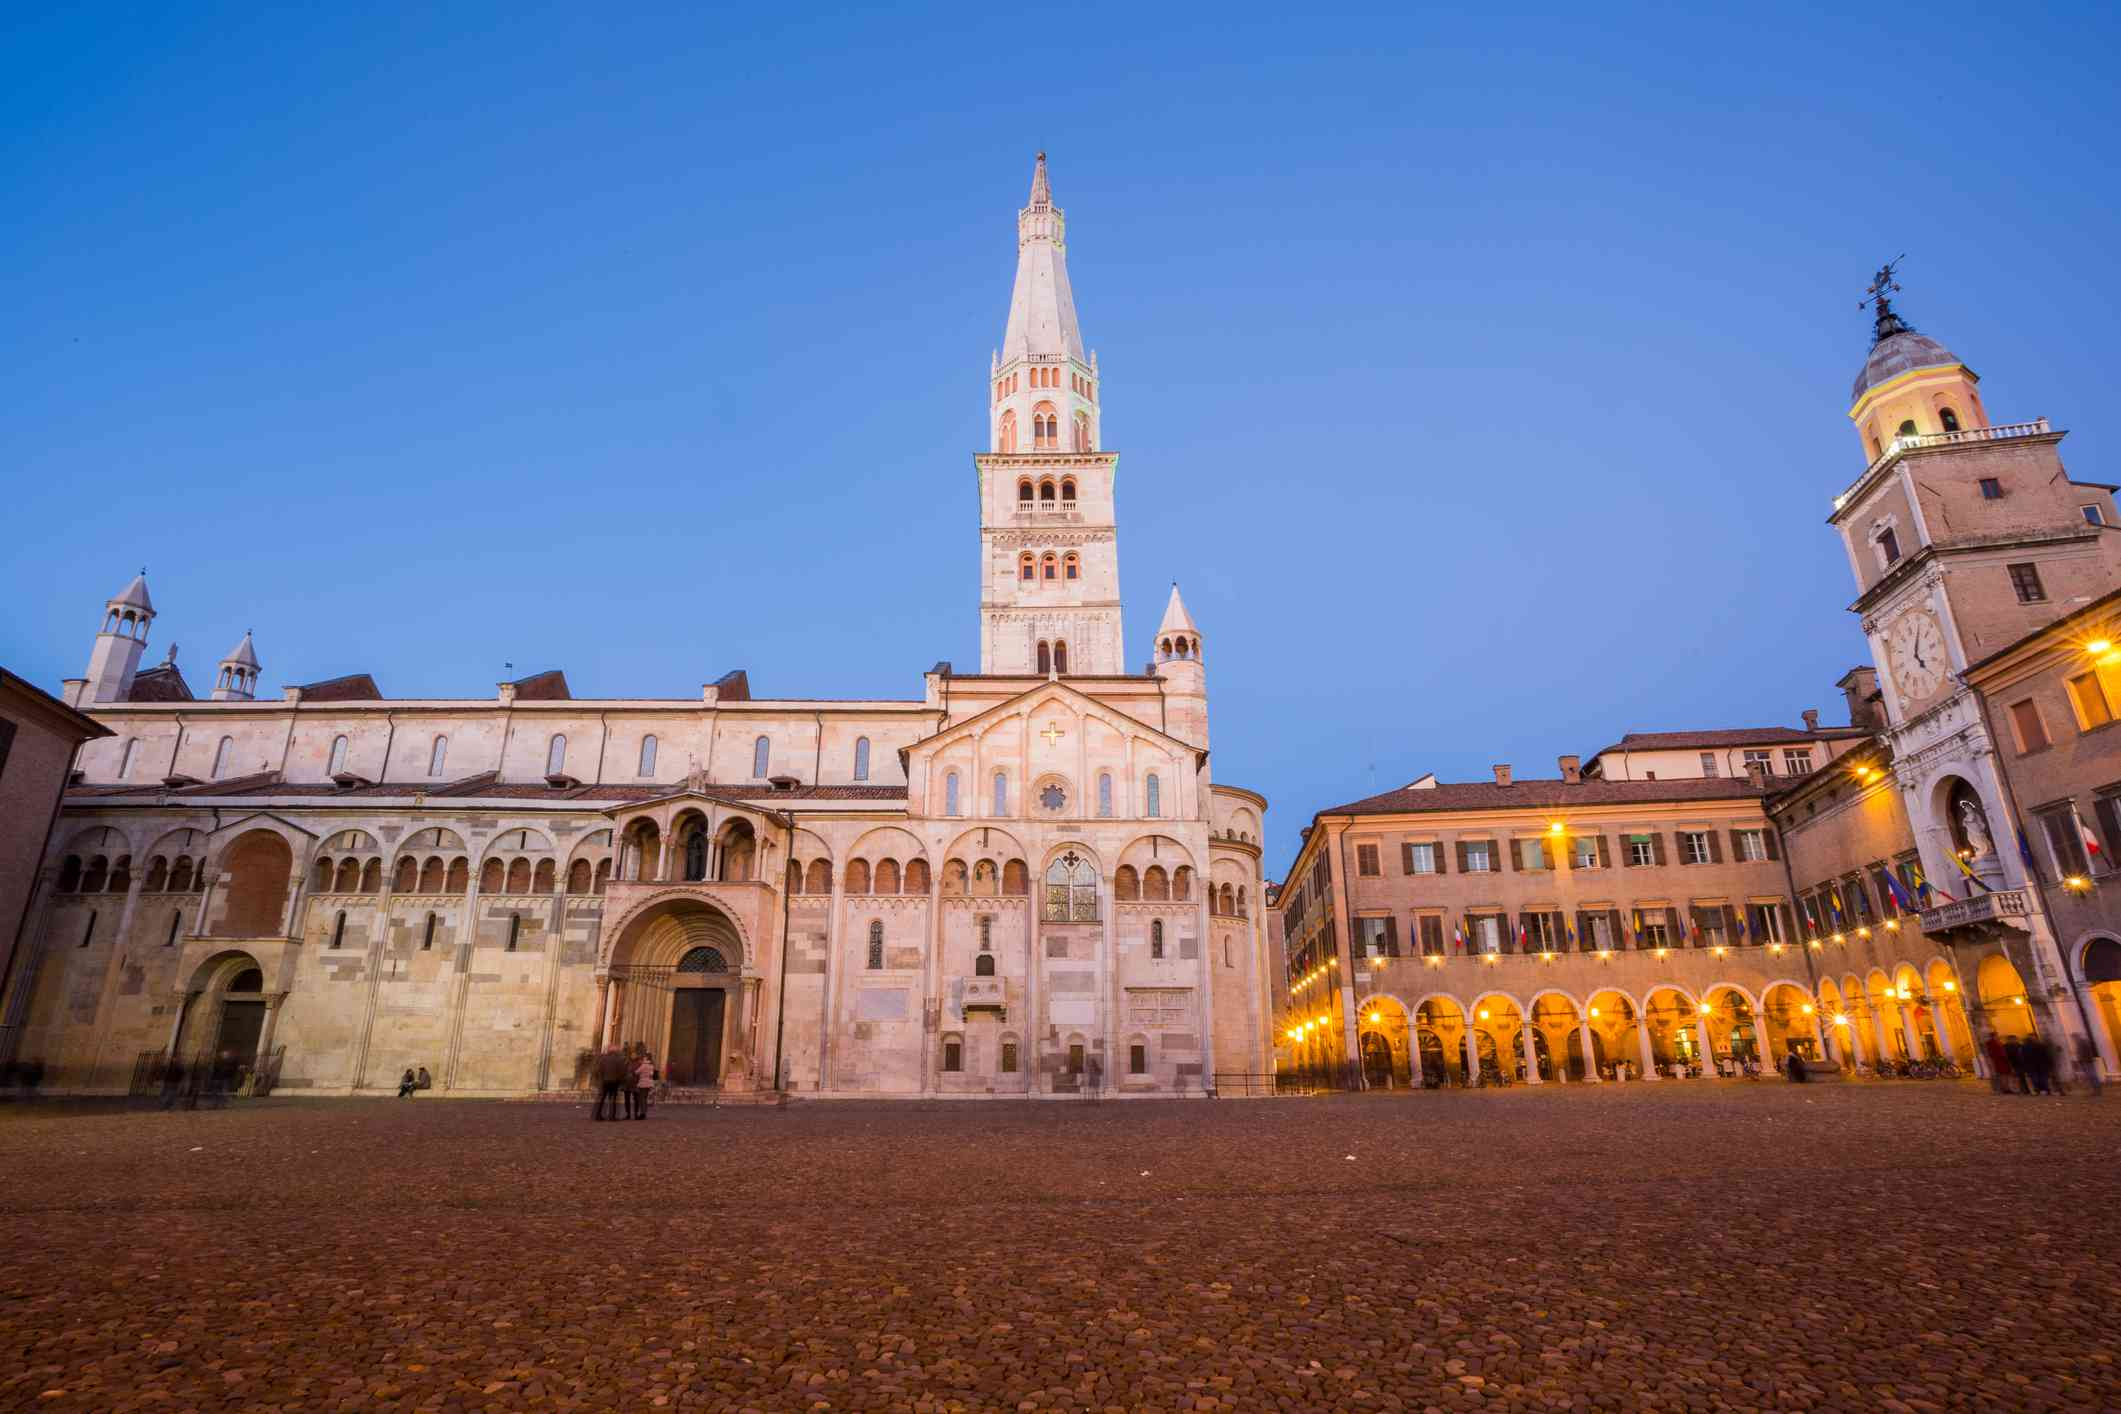 Modena, Emilia Romagna, Italy. Piazza Grande and Duomo Cathedral at sunset.